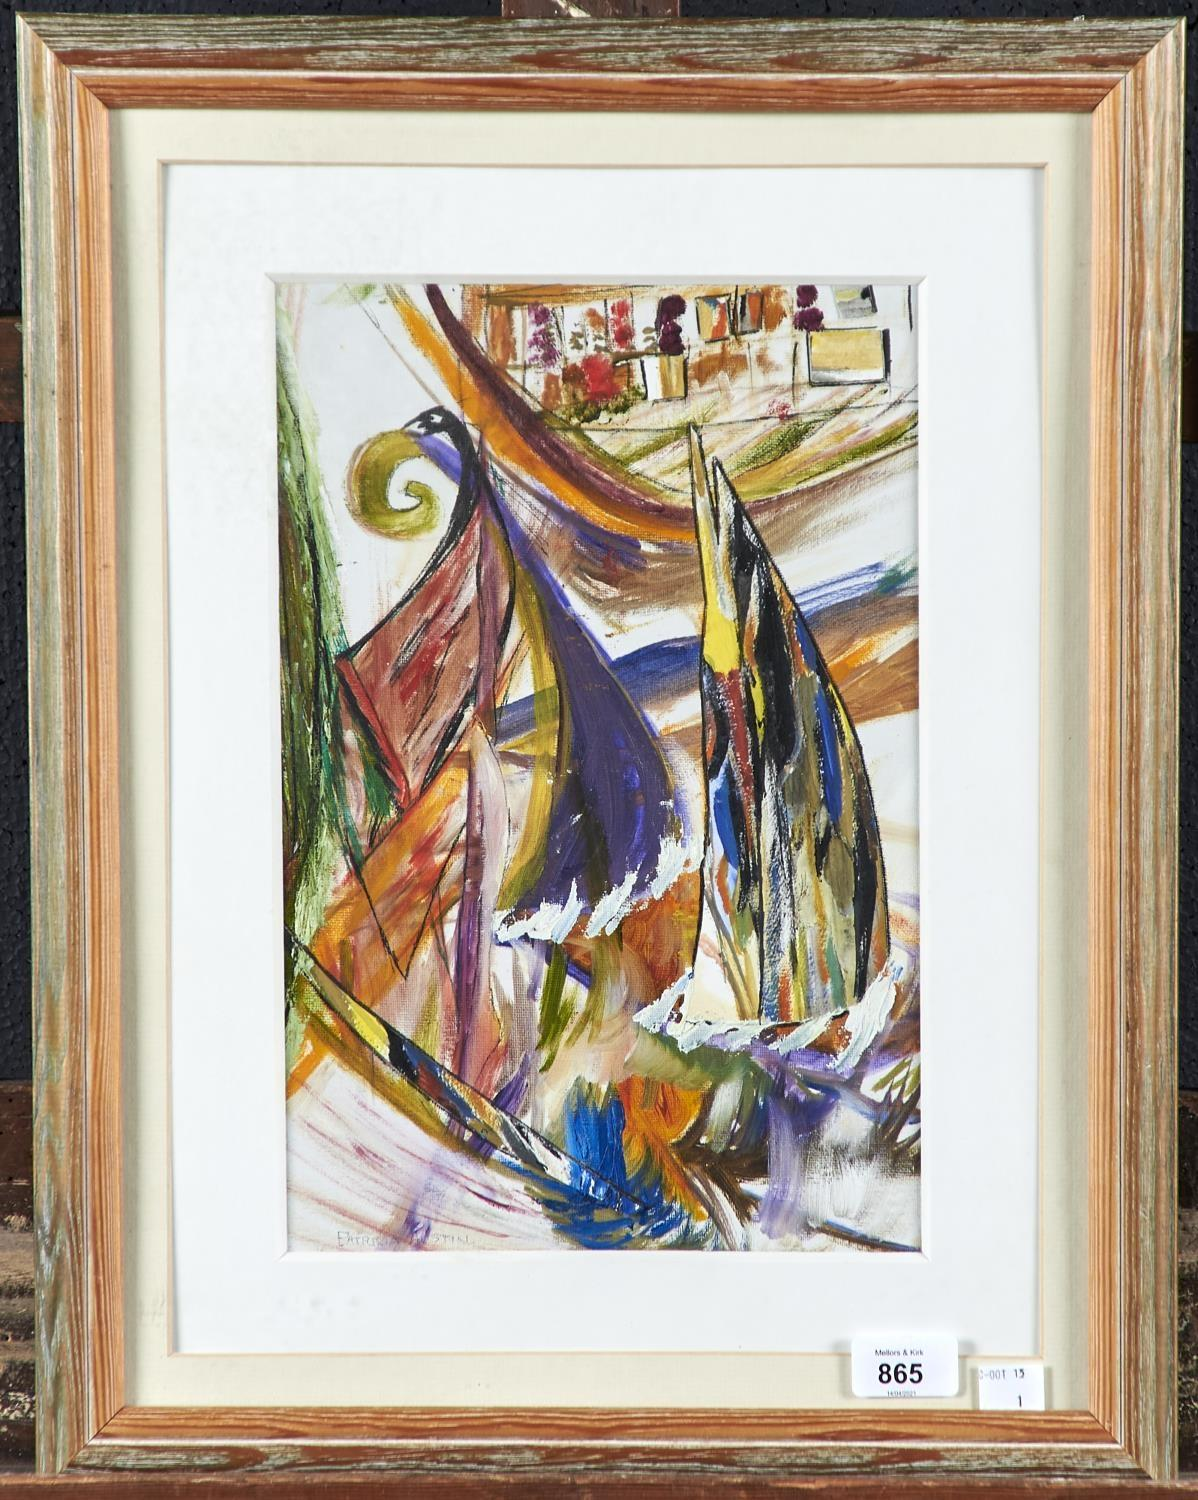 PATRICIA AUSTIN, 20TH/21ST CENTURY - THE RACE, SIGNED, SIGNED AGAIN AND INSCRIBED VERSO, OIL AND